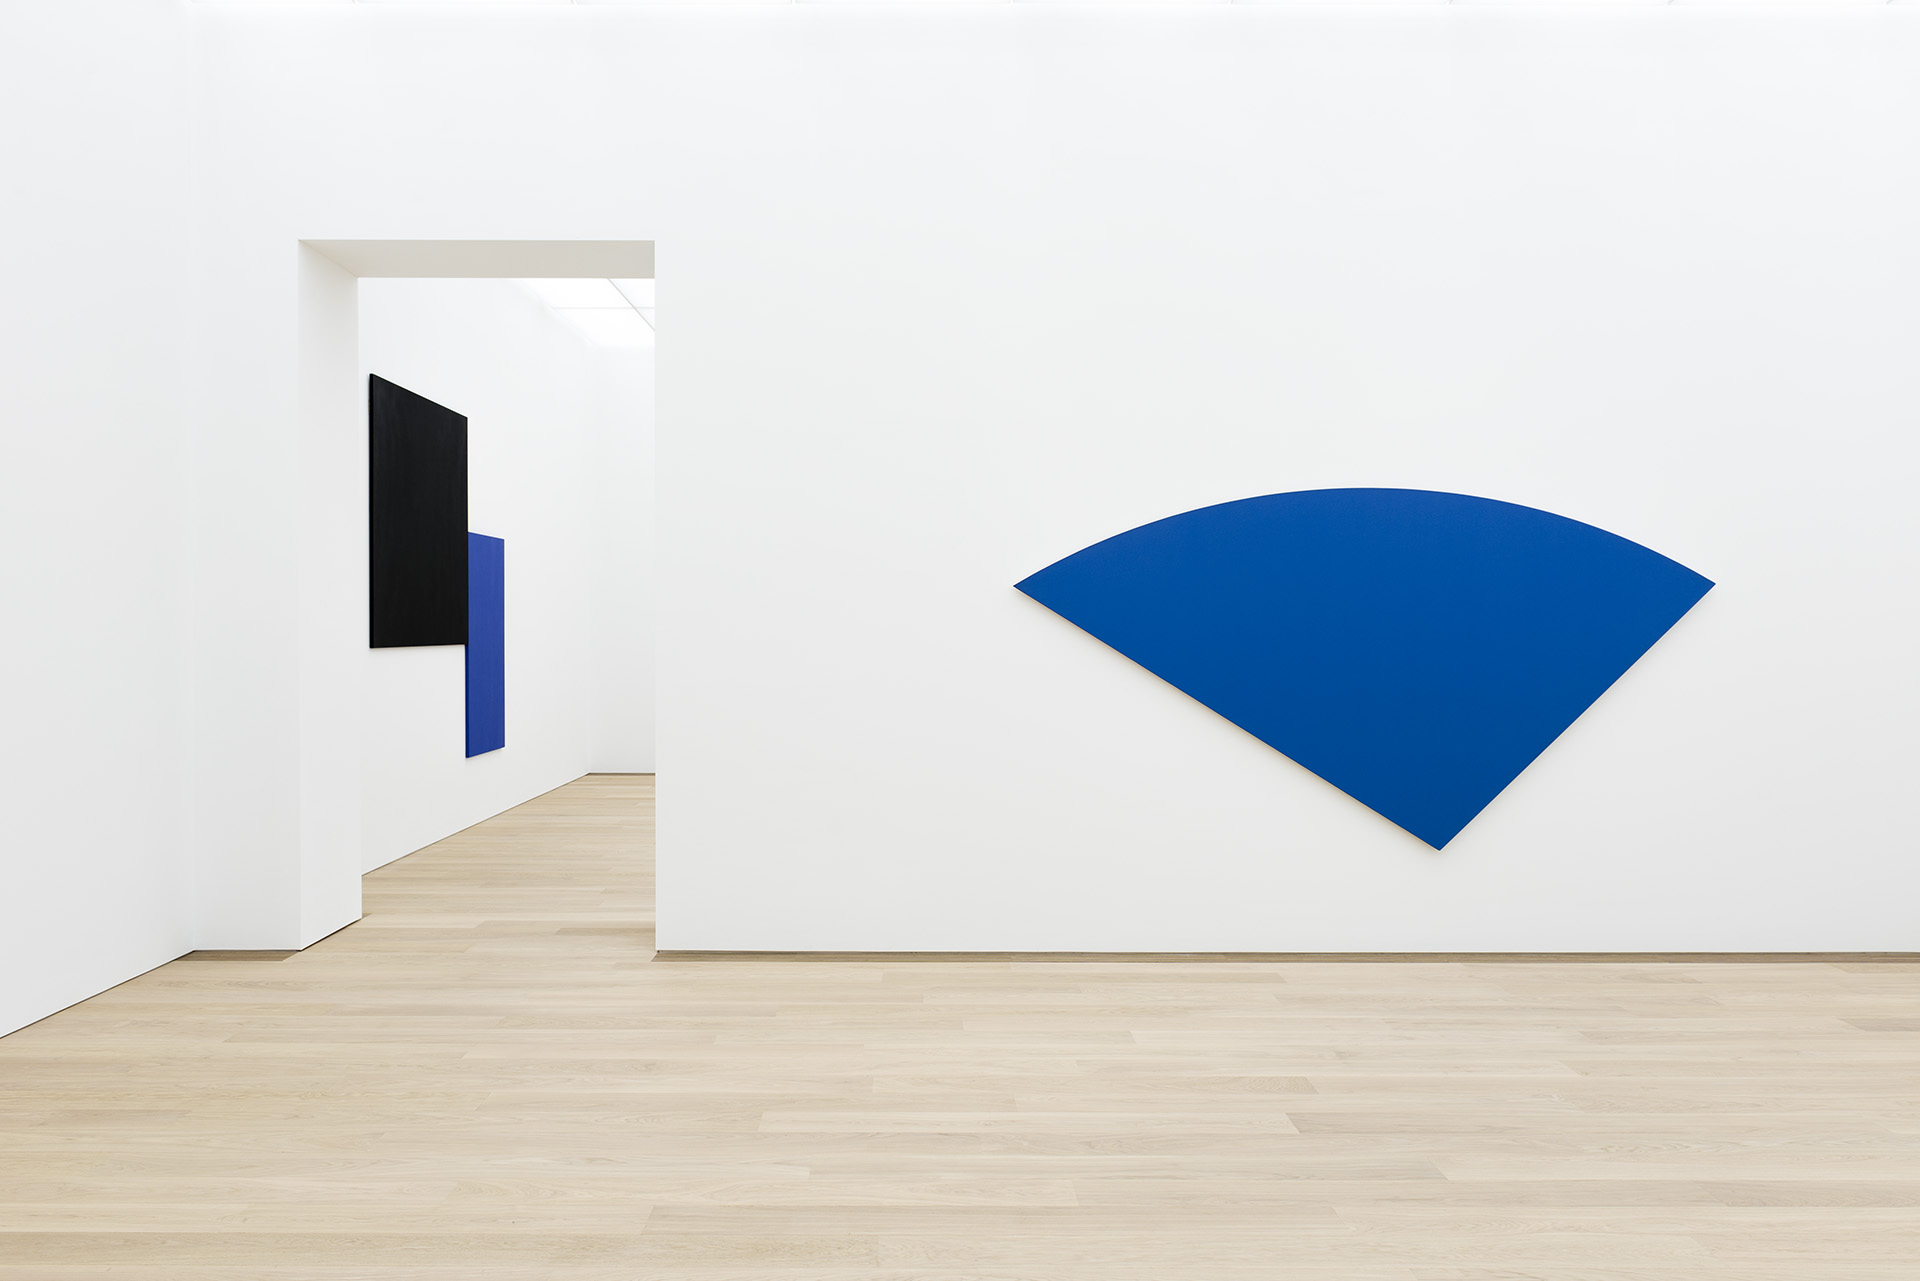 ellsworth-kelly-voorlinden